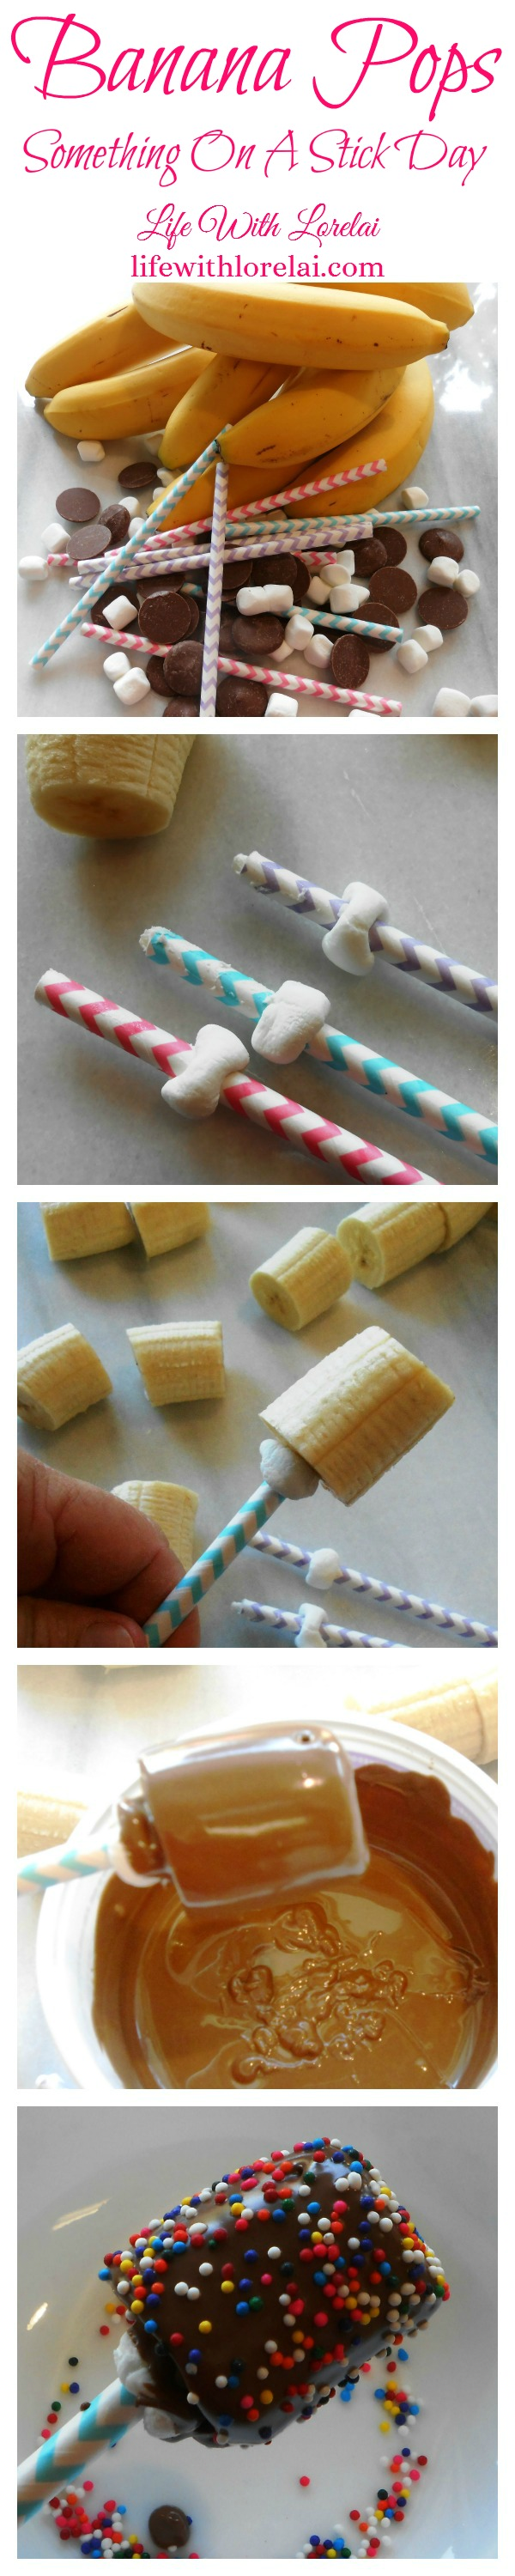 Banana Pops vertical step-by-step - Something On A Stick Day